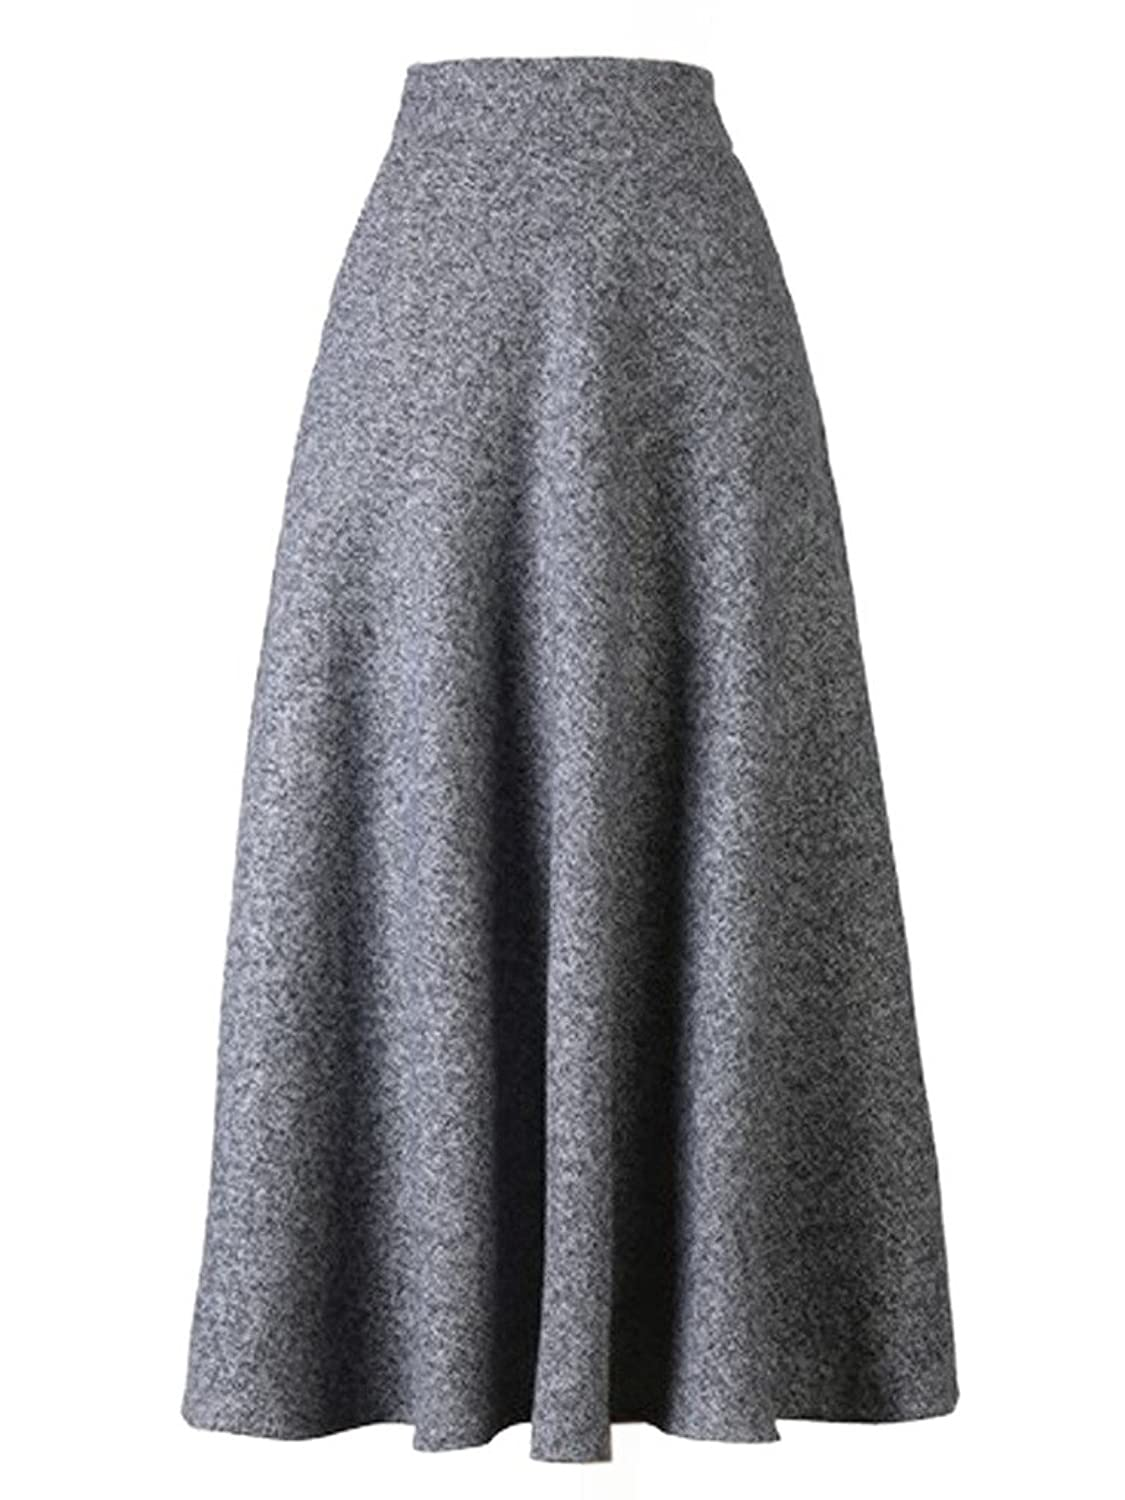 1920s Skirts, Gatsby Skirts, Vintage Pleated Skirts Choies Womens High Waist A-line Flared Long Skirt Winter Fall Midi Skirt $33.99 AT vintagedancer.com